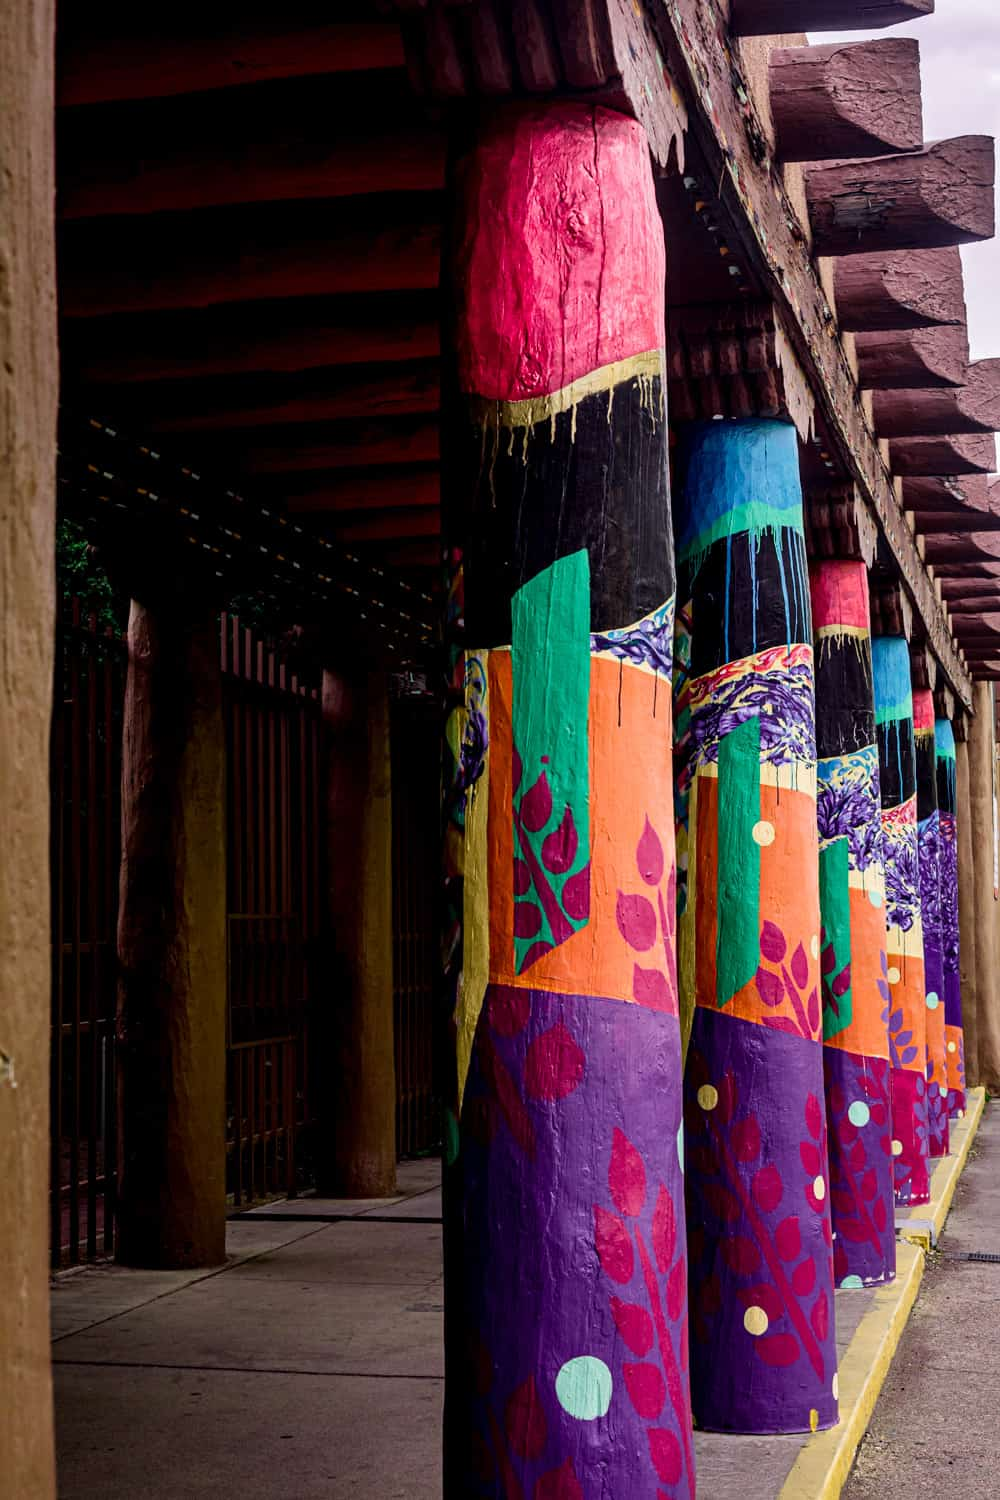 Colorful pillars by the plaza in Santa Fe.